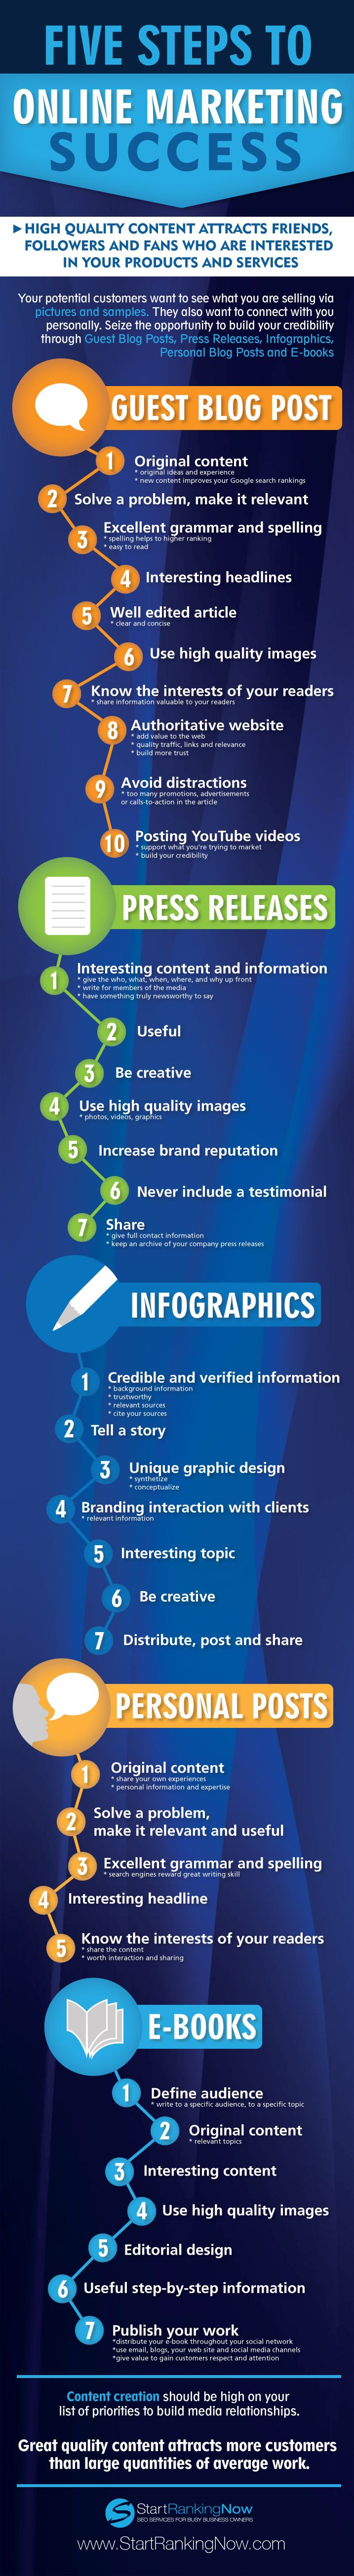 5 steps to online marketing success [infographic]